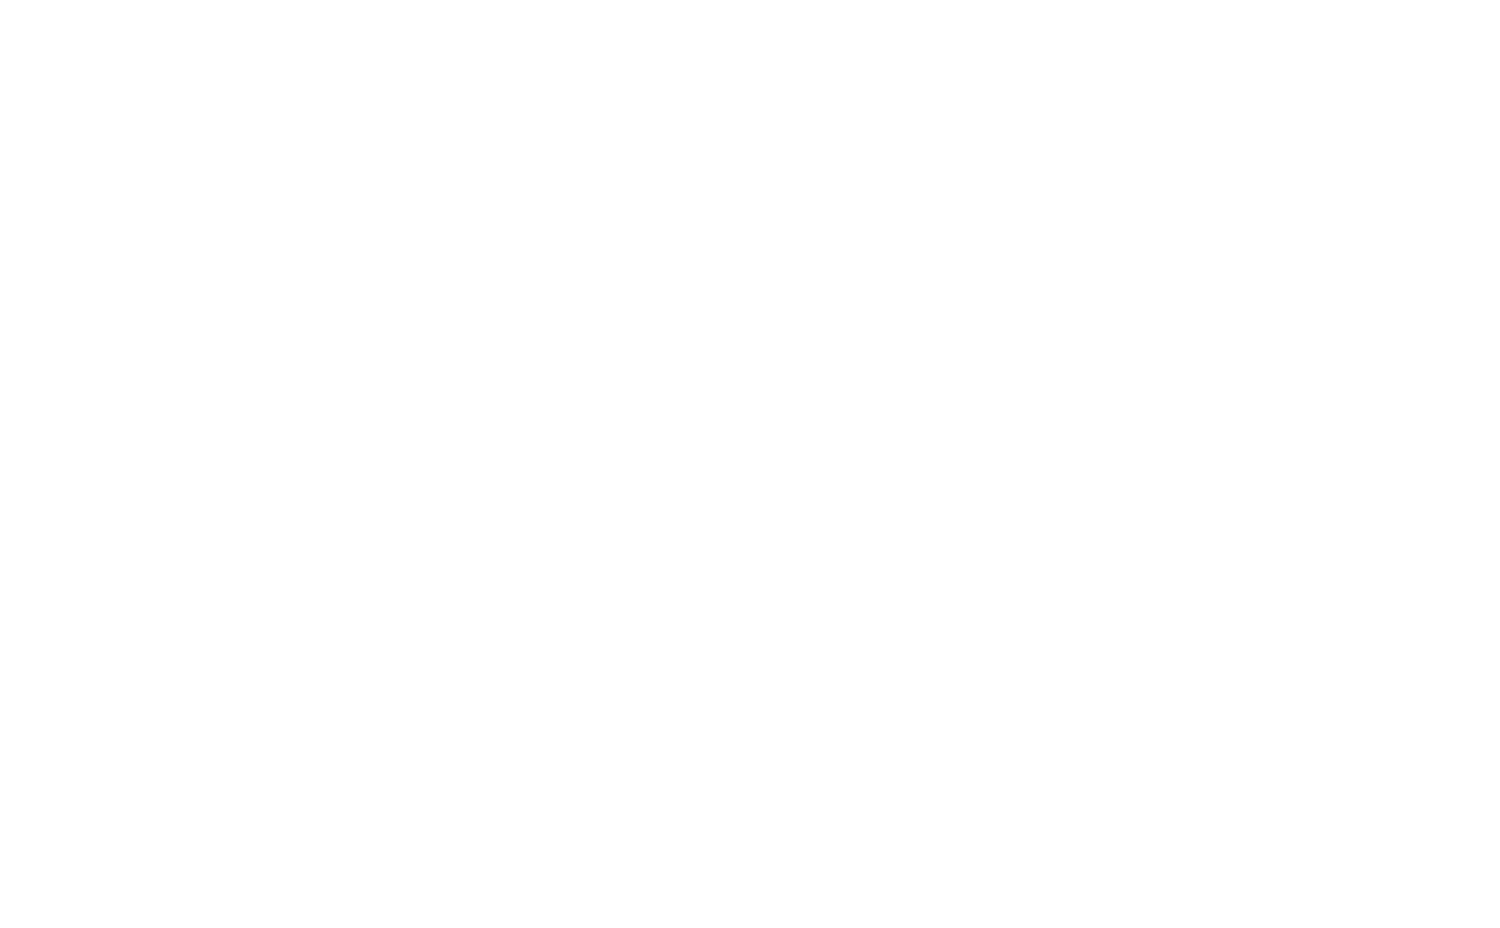 Dave Tolley